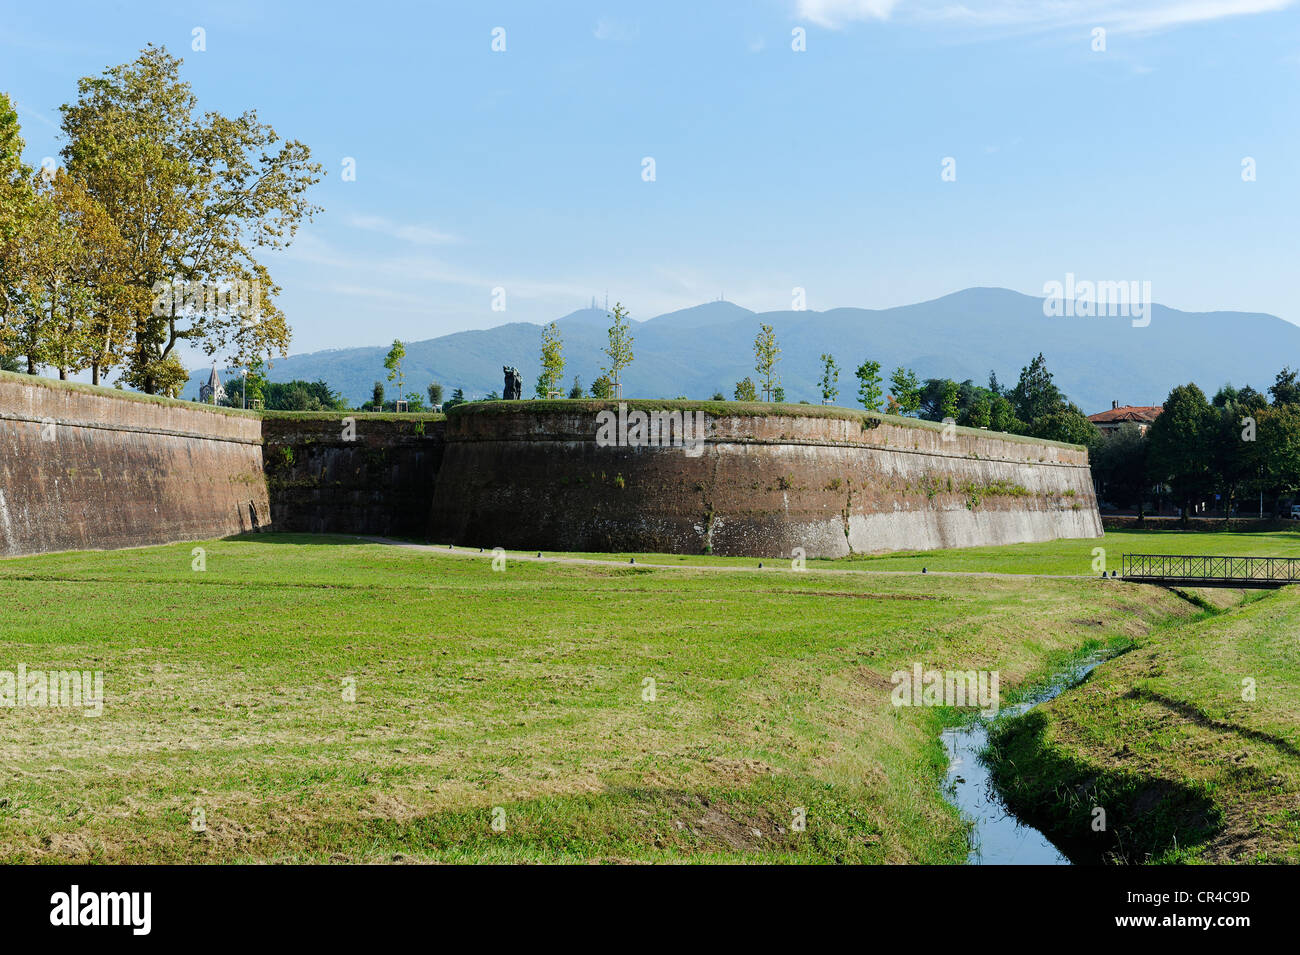 Western city walls at the Porta Vittorio Emanuele, Lucca, Tuscany, Italy, Europe - Stock Image